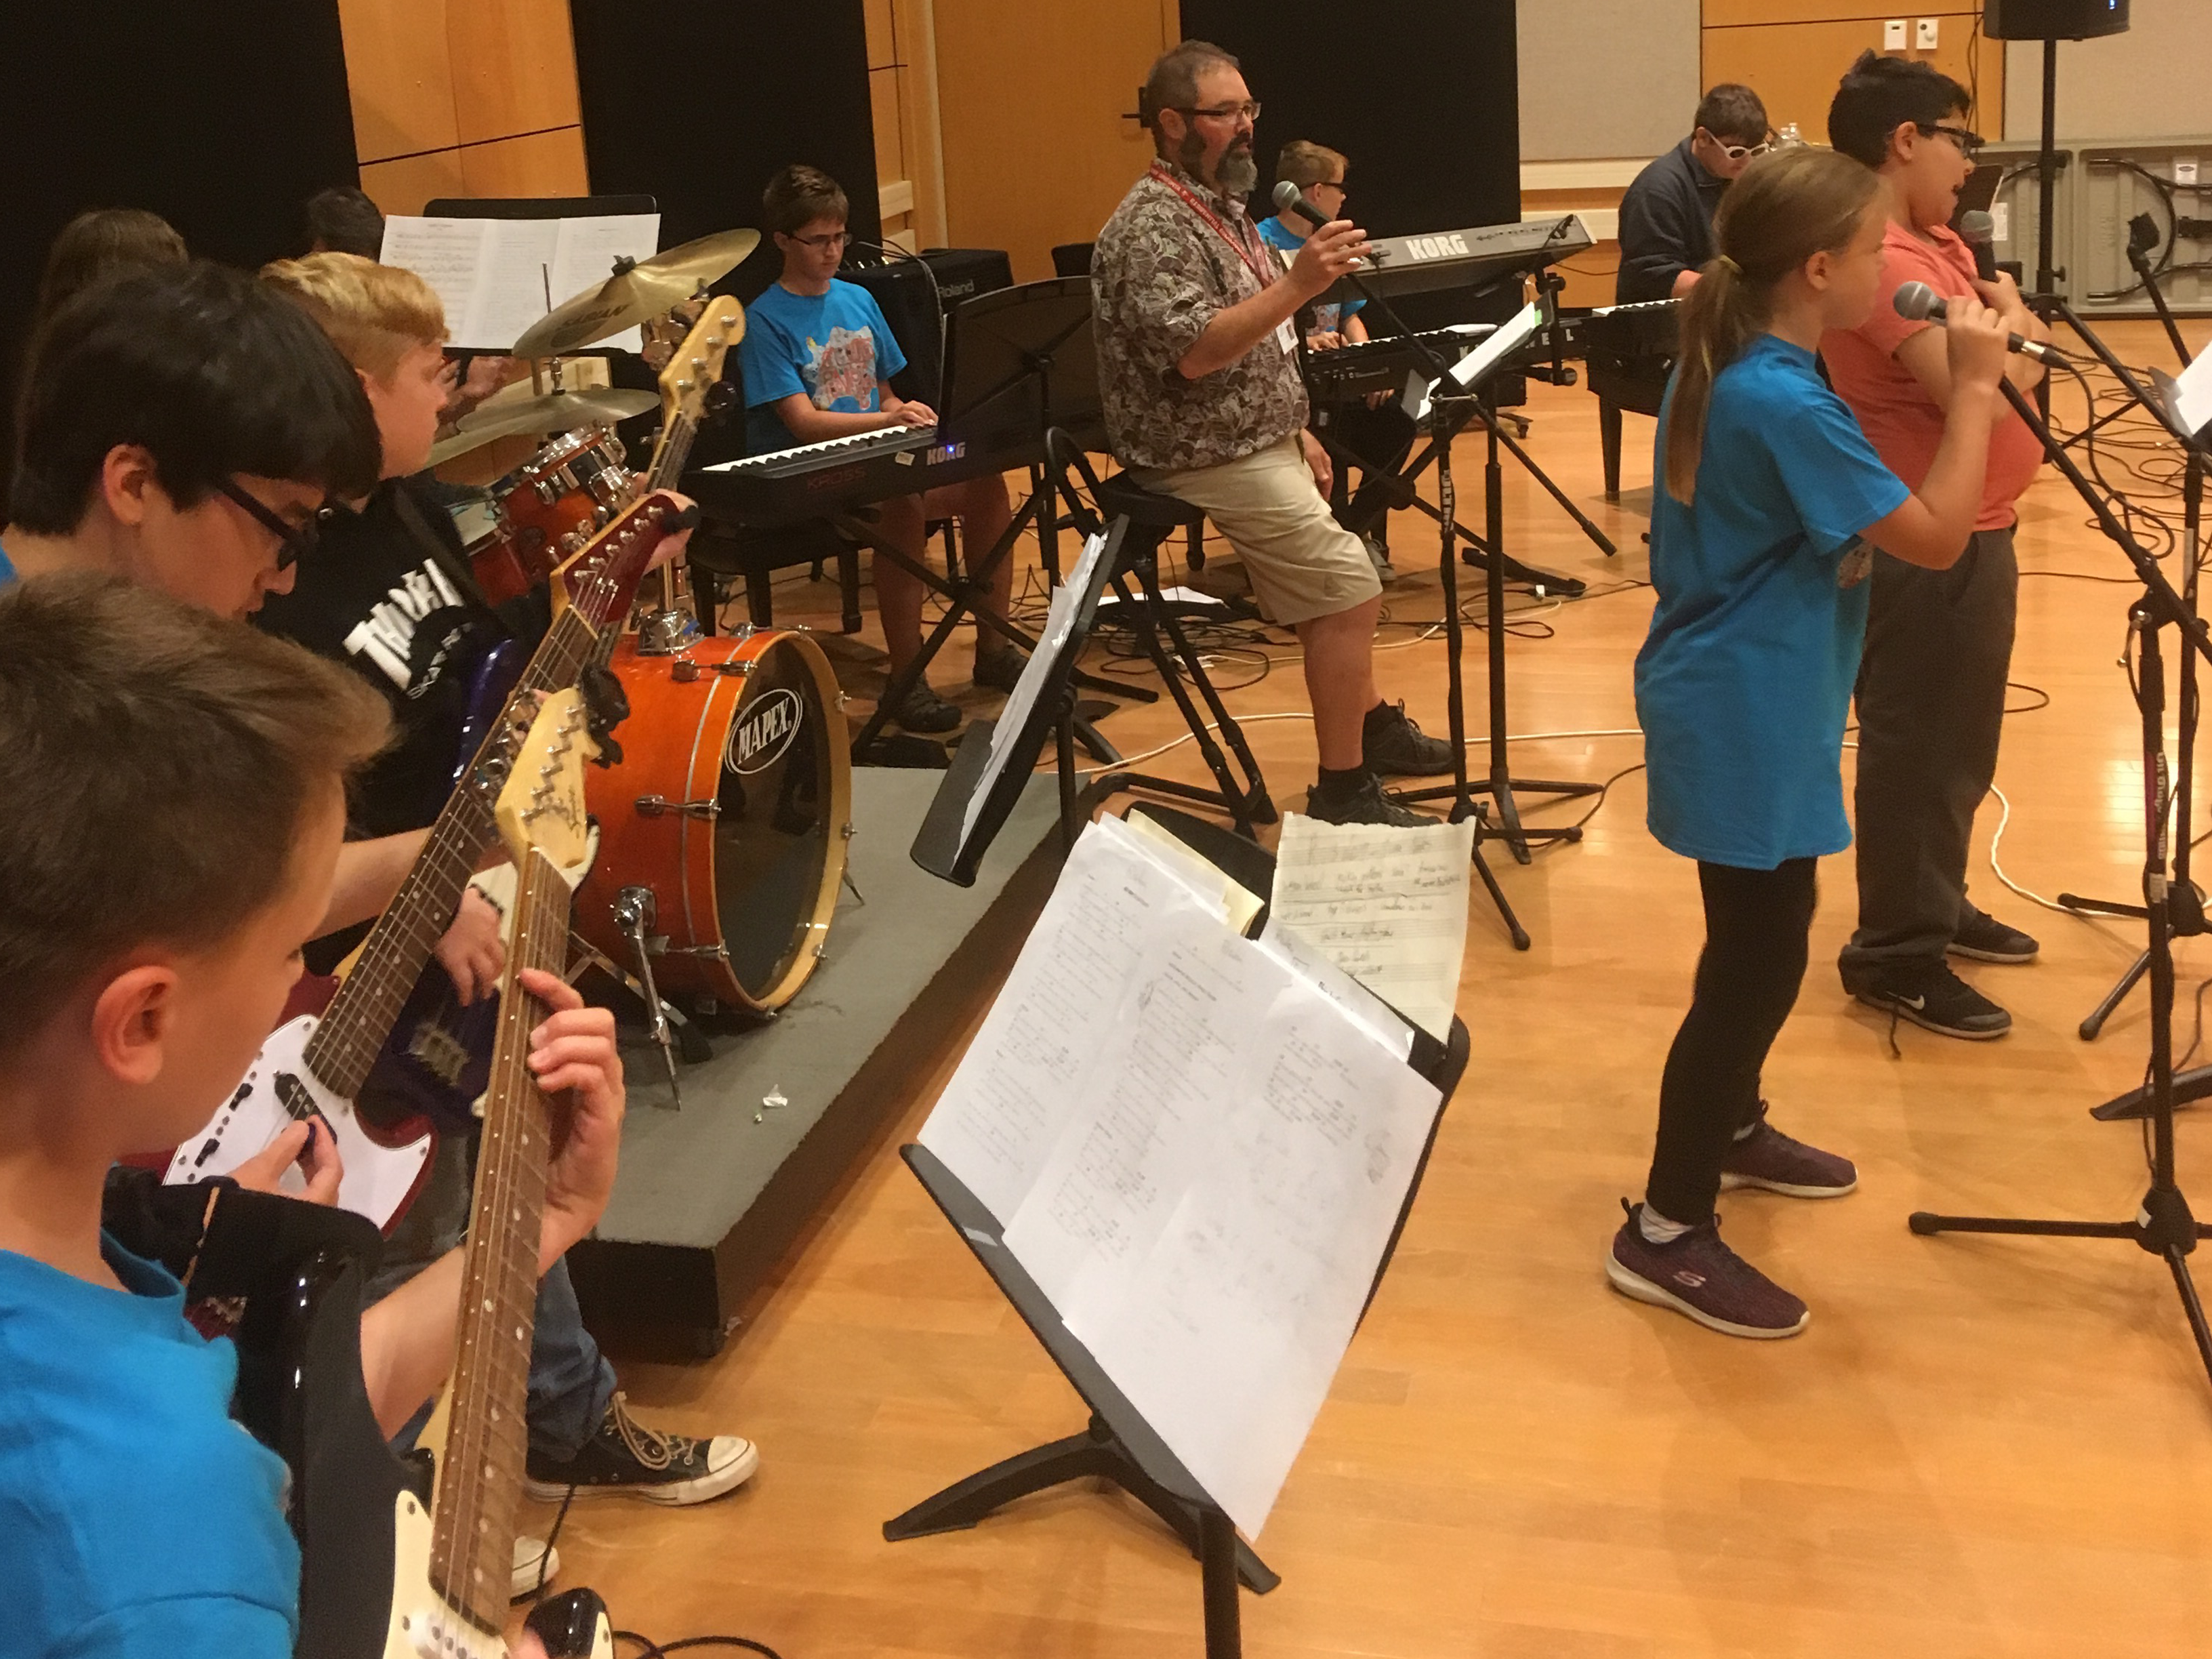 Oneonta Pop Music Experience Returns for the 3rd Year